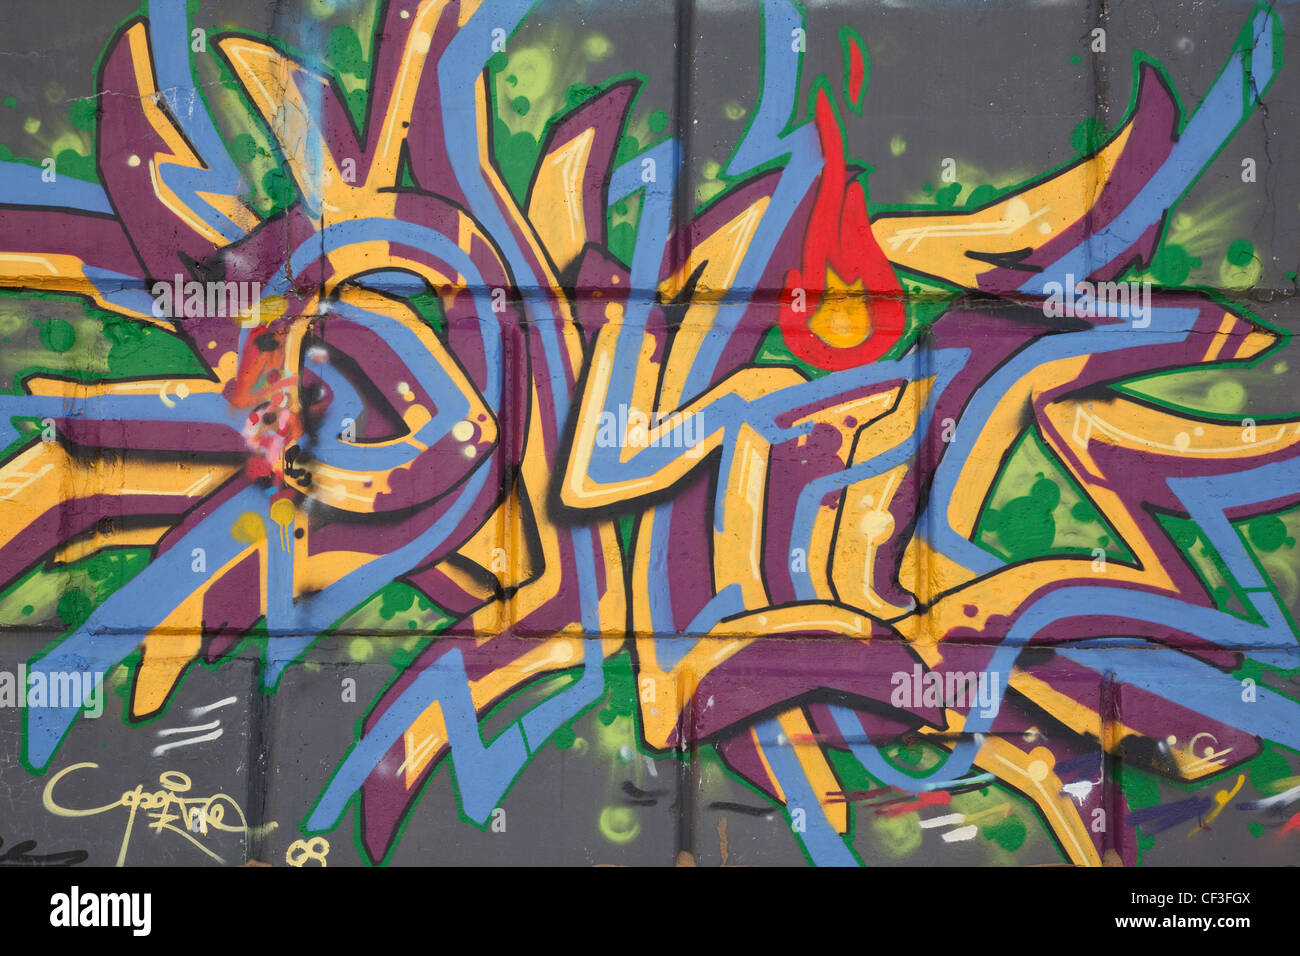 Bright graffiti on concrete wall abstract drawing street graphics